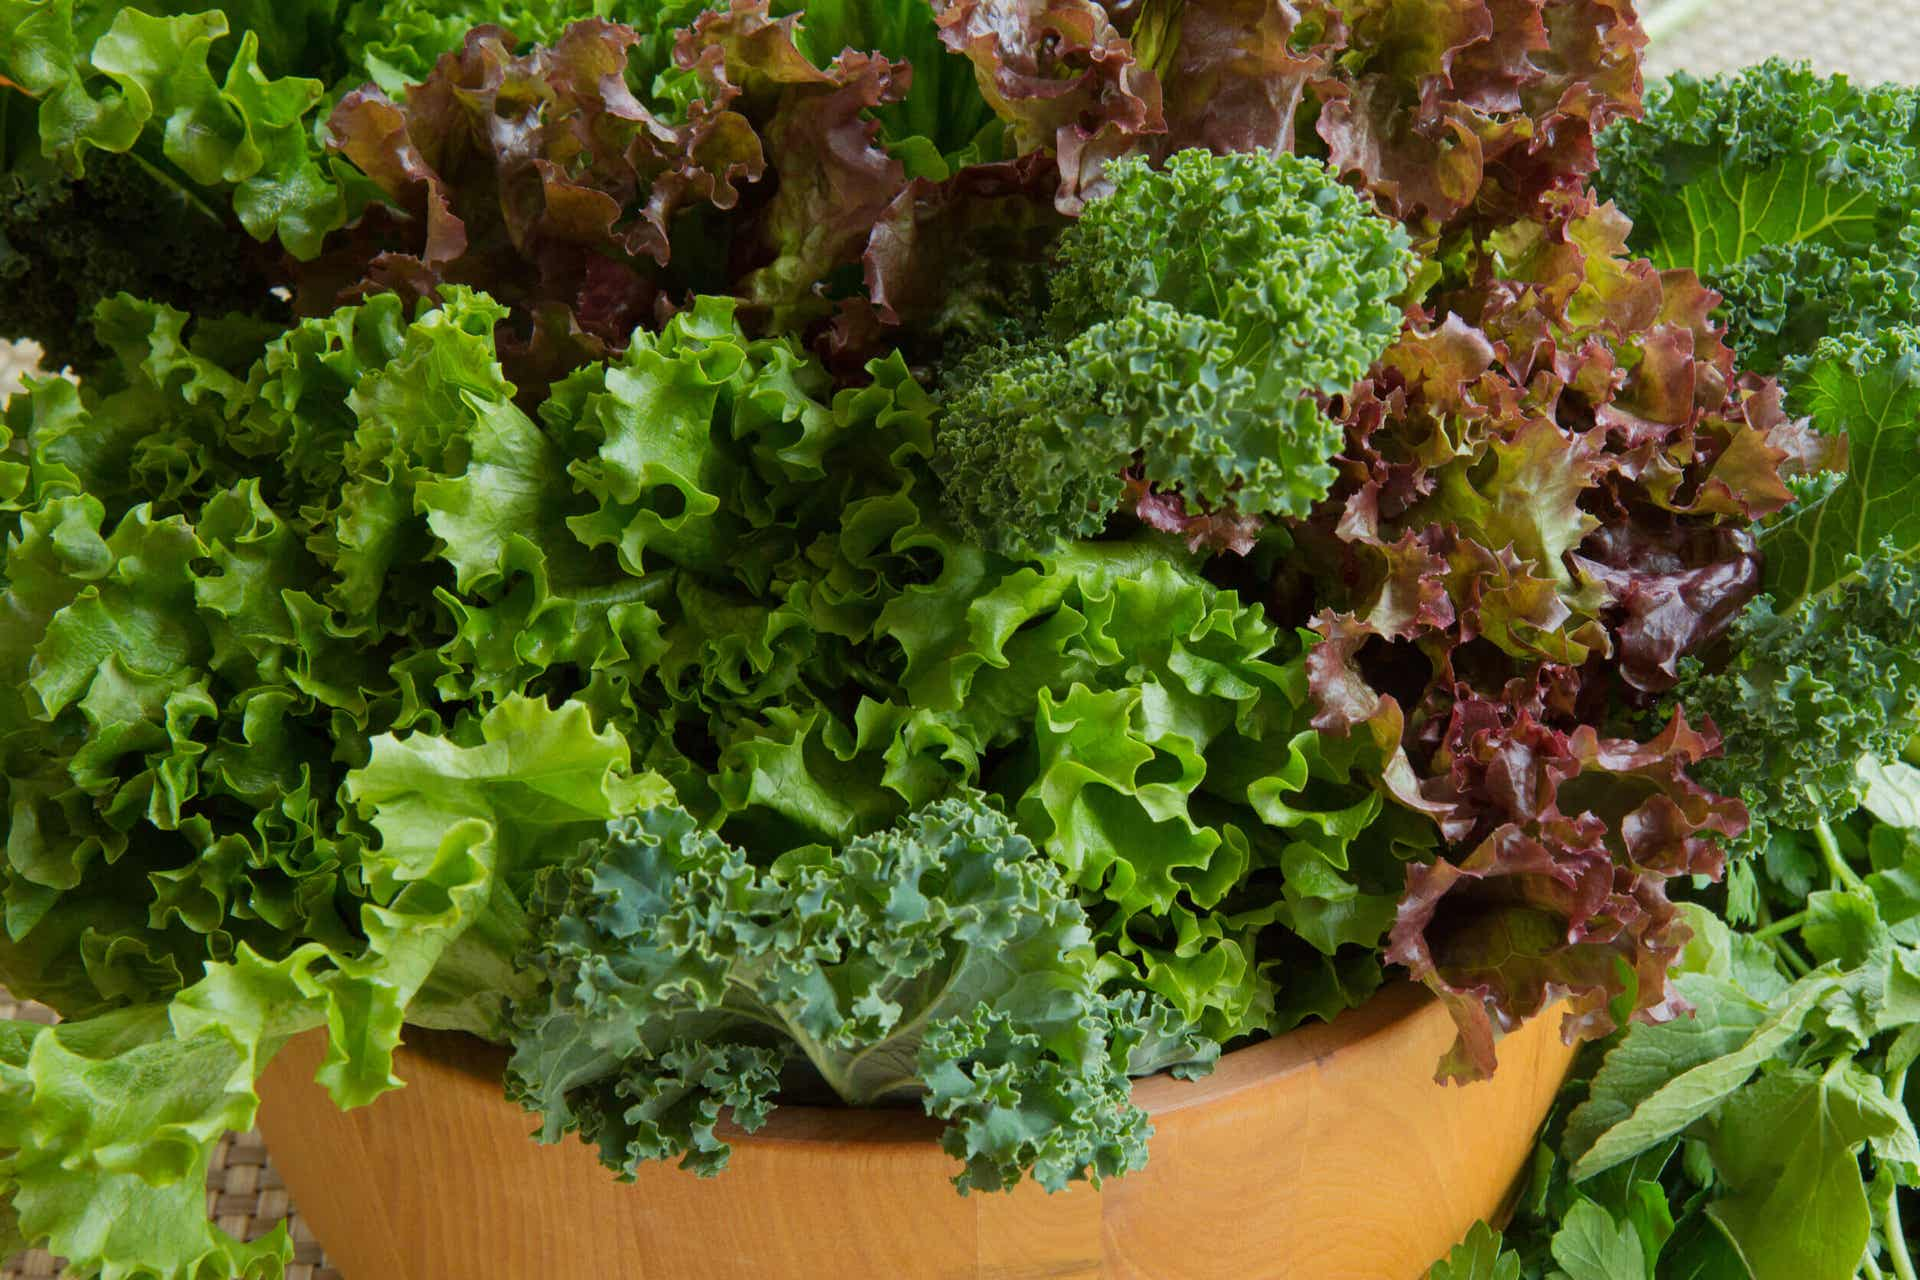 Red and green lettuce in a bowl.